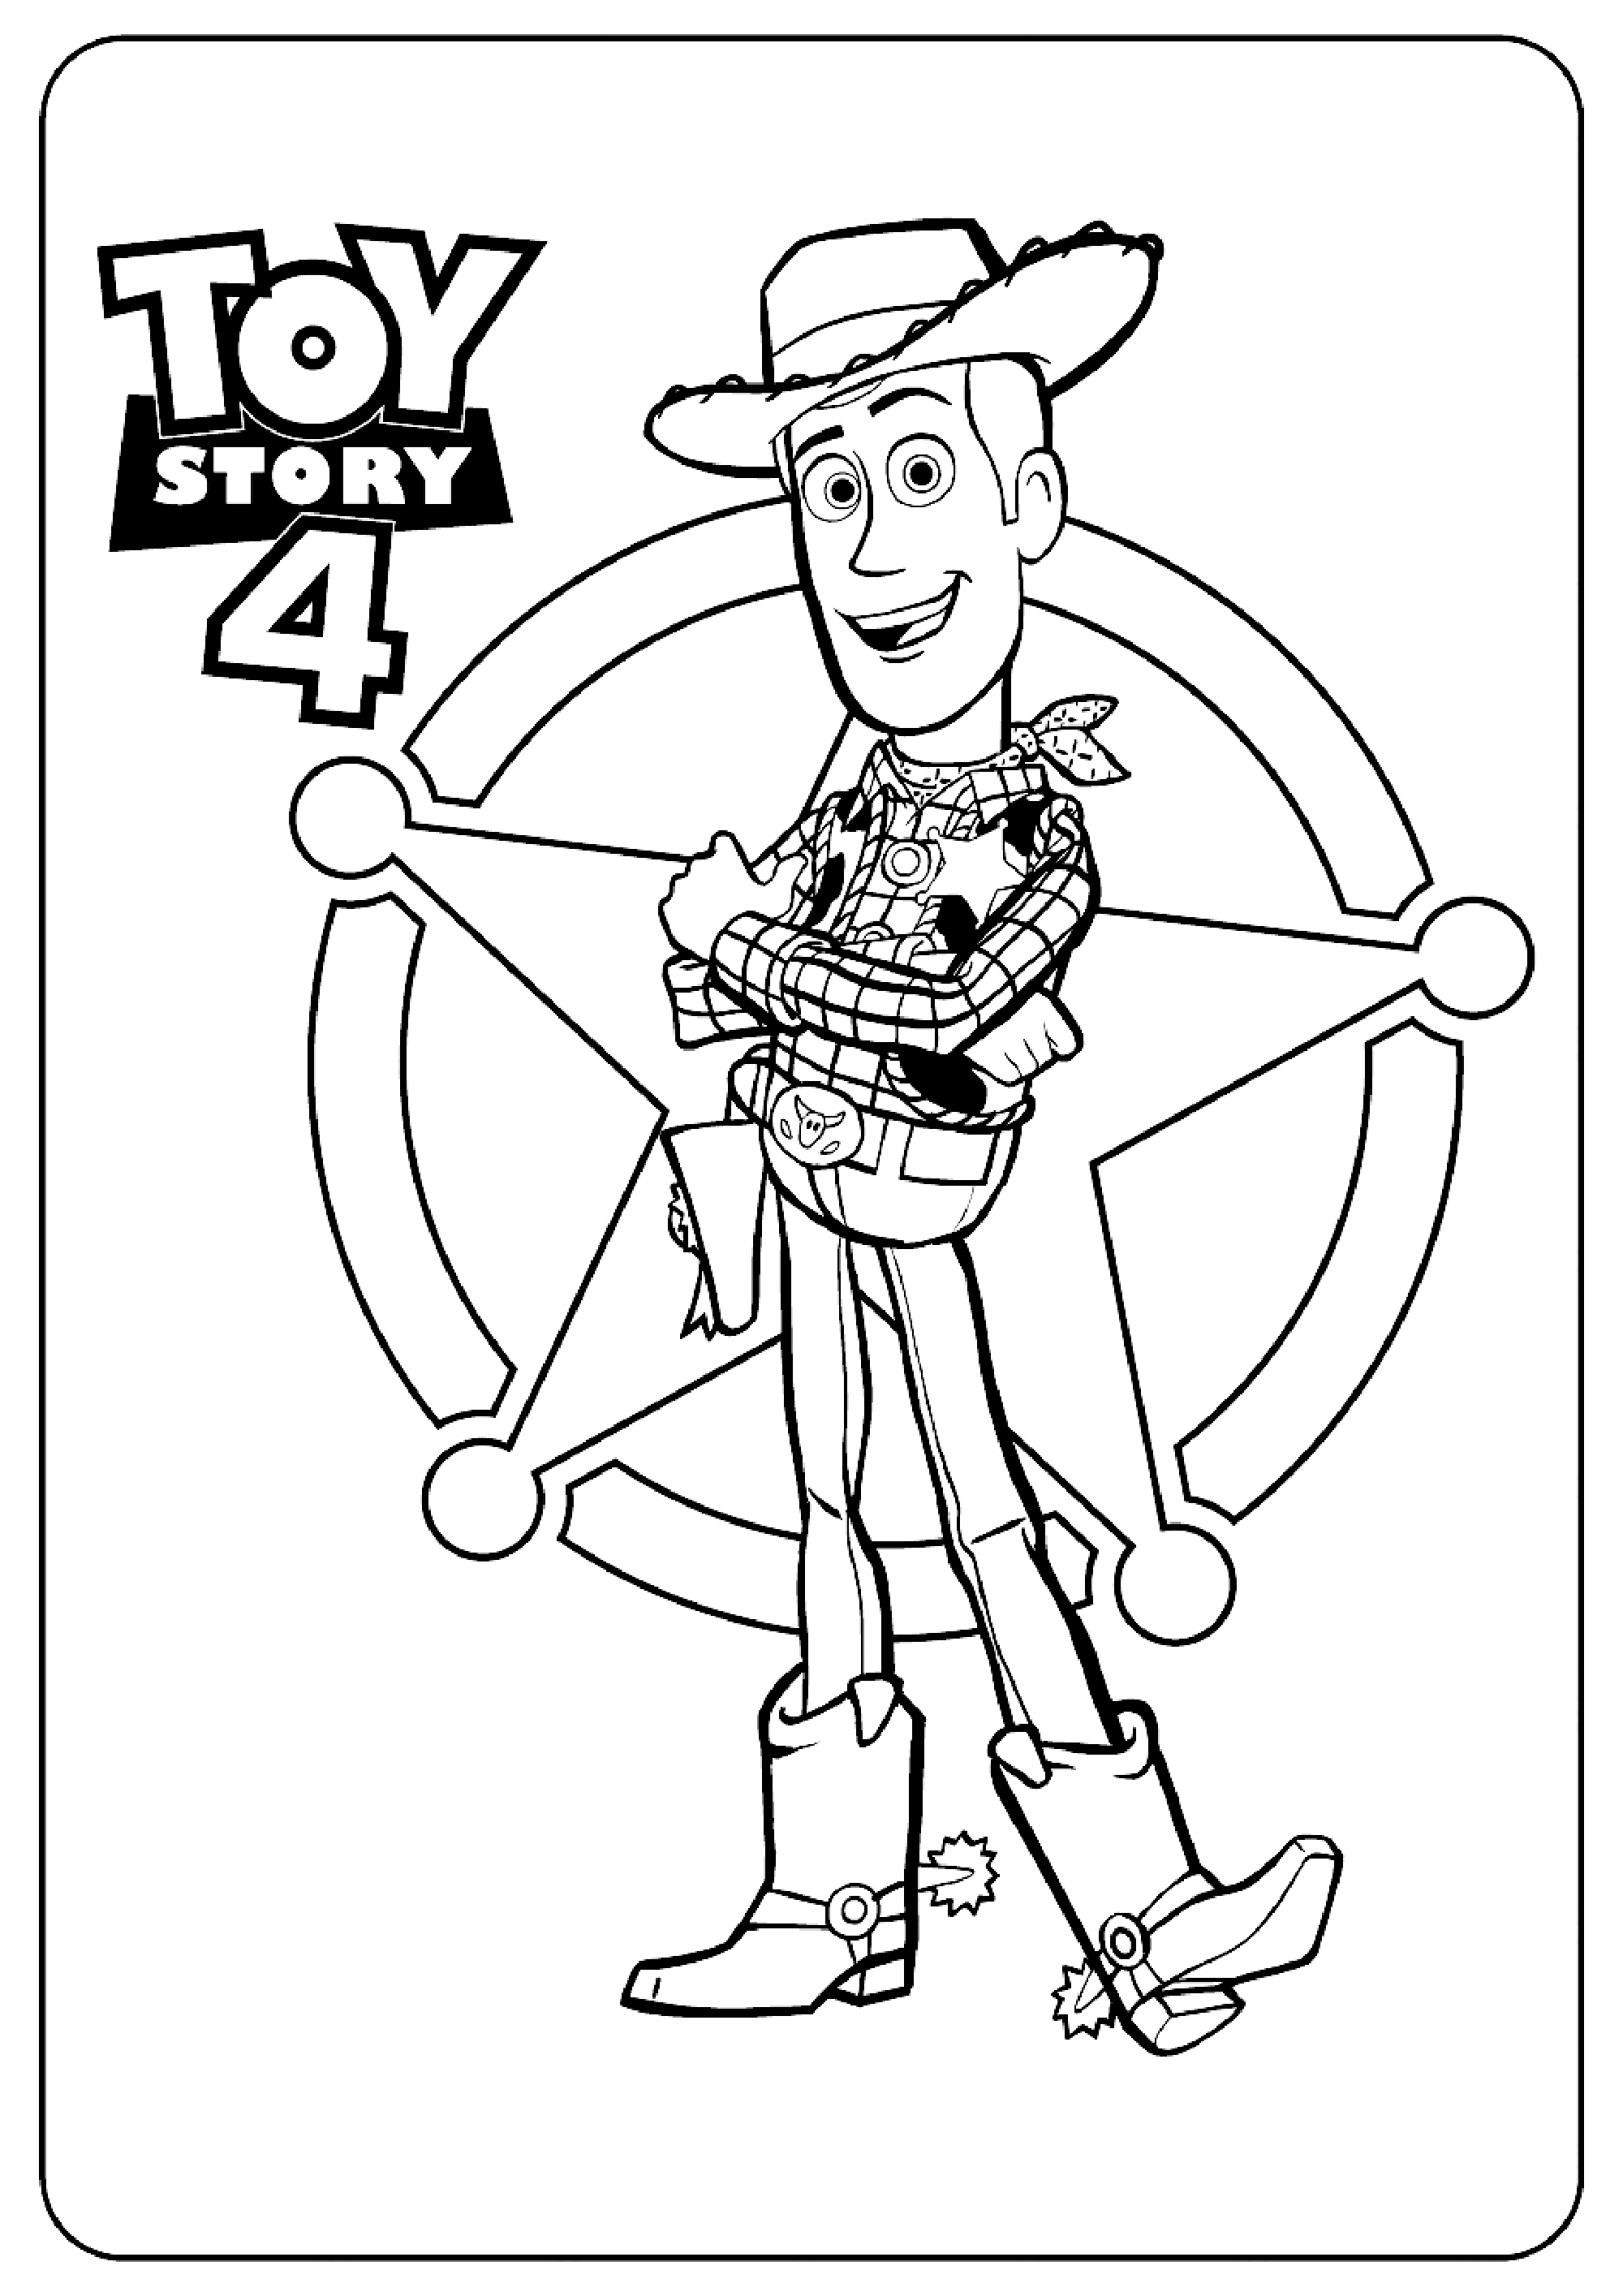 woody toy story coloring pages woody from toy story coloring page coloring pages for coloring pages toy woody story